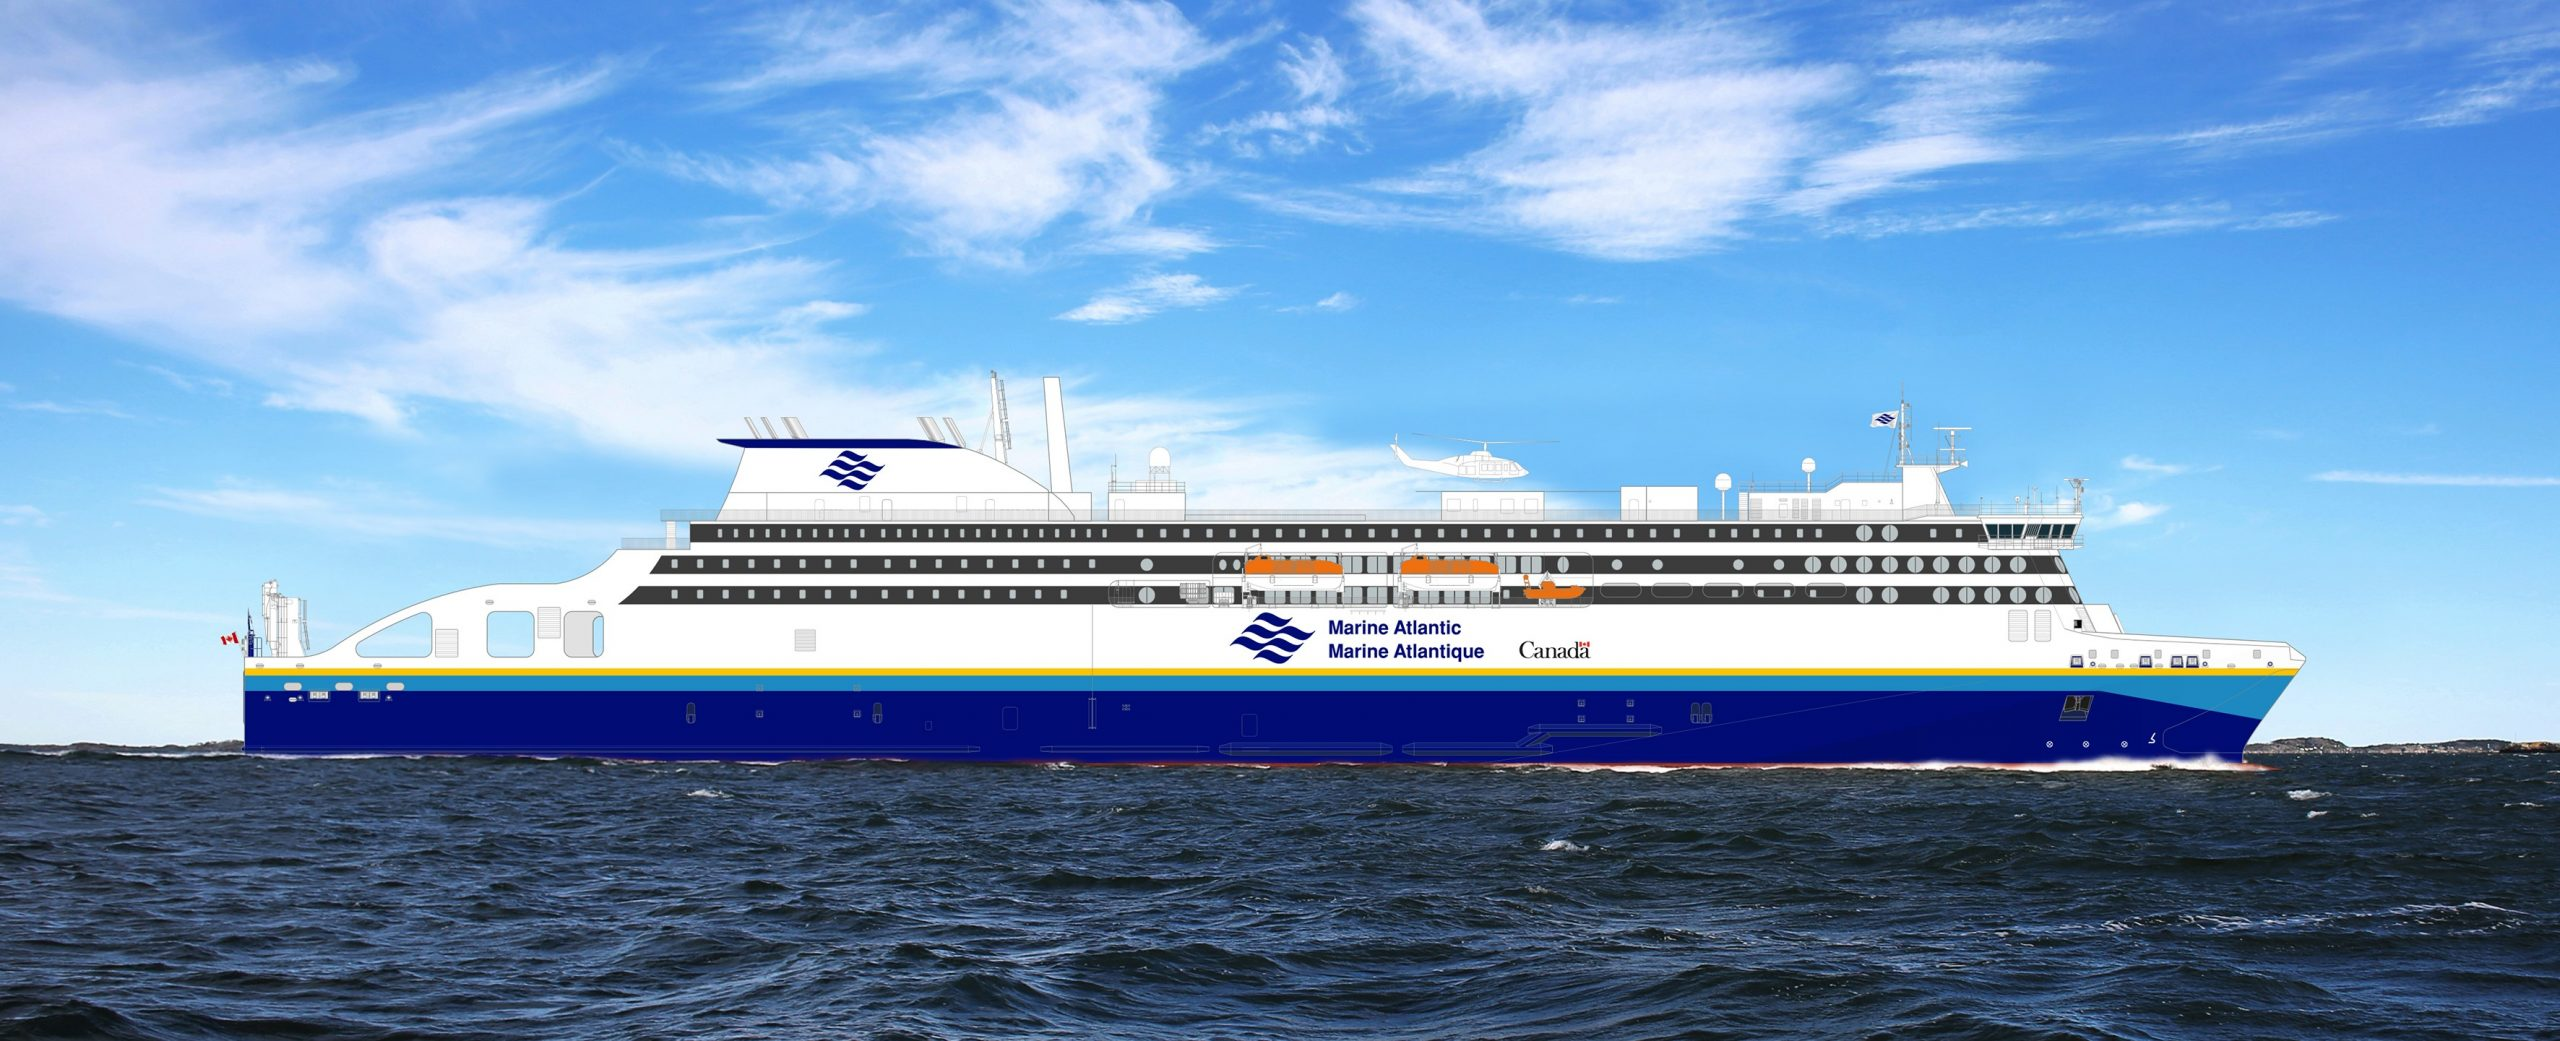 Stena RoRo inks charter deal for one LNG -powered ferry with Marine Atlantic